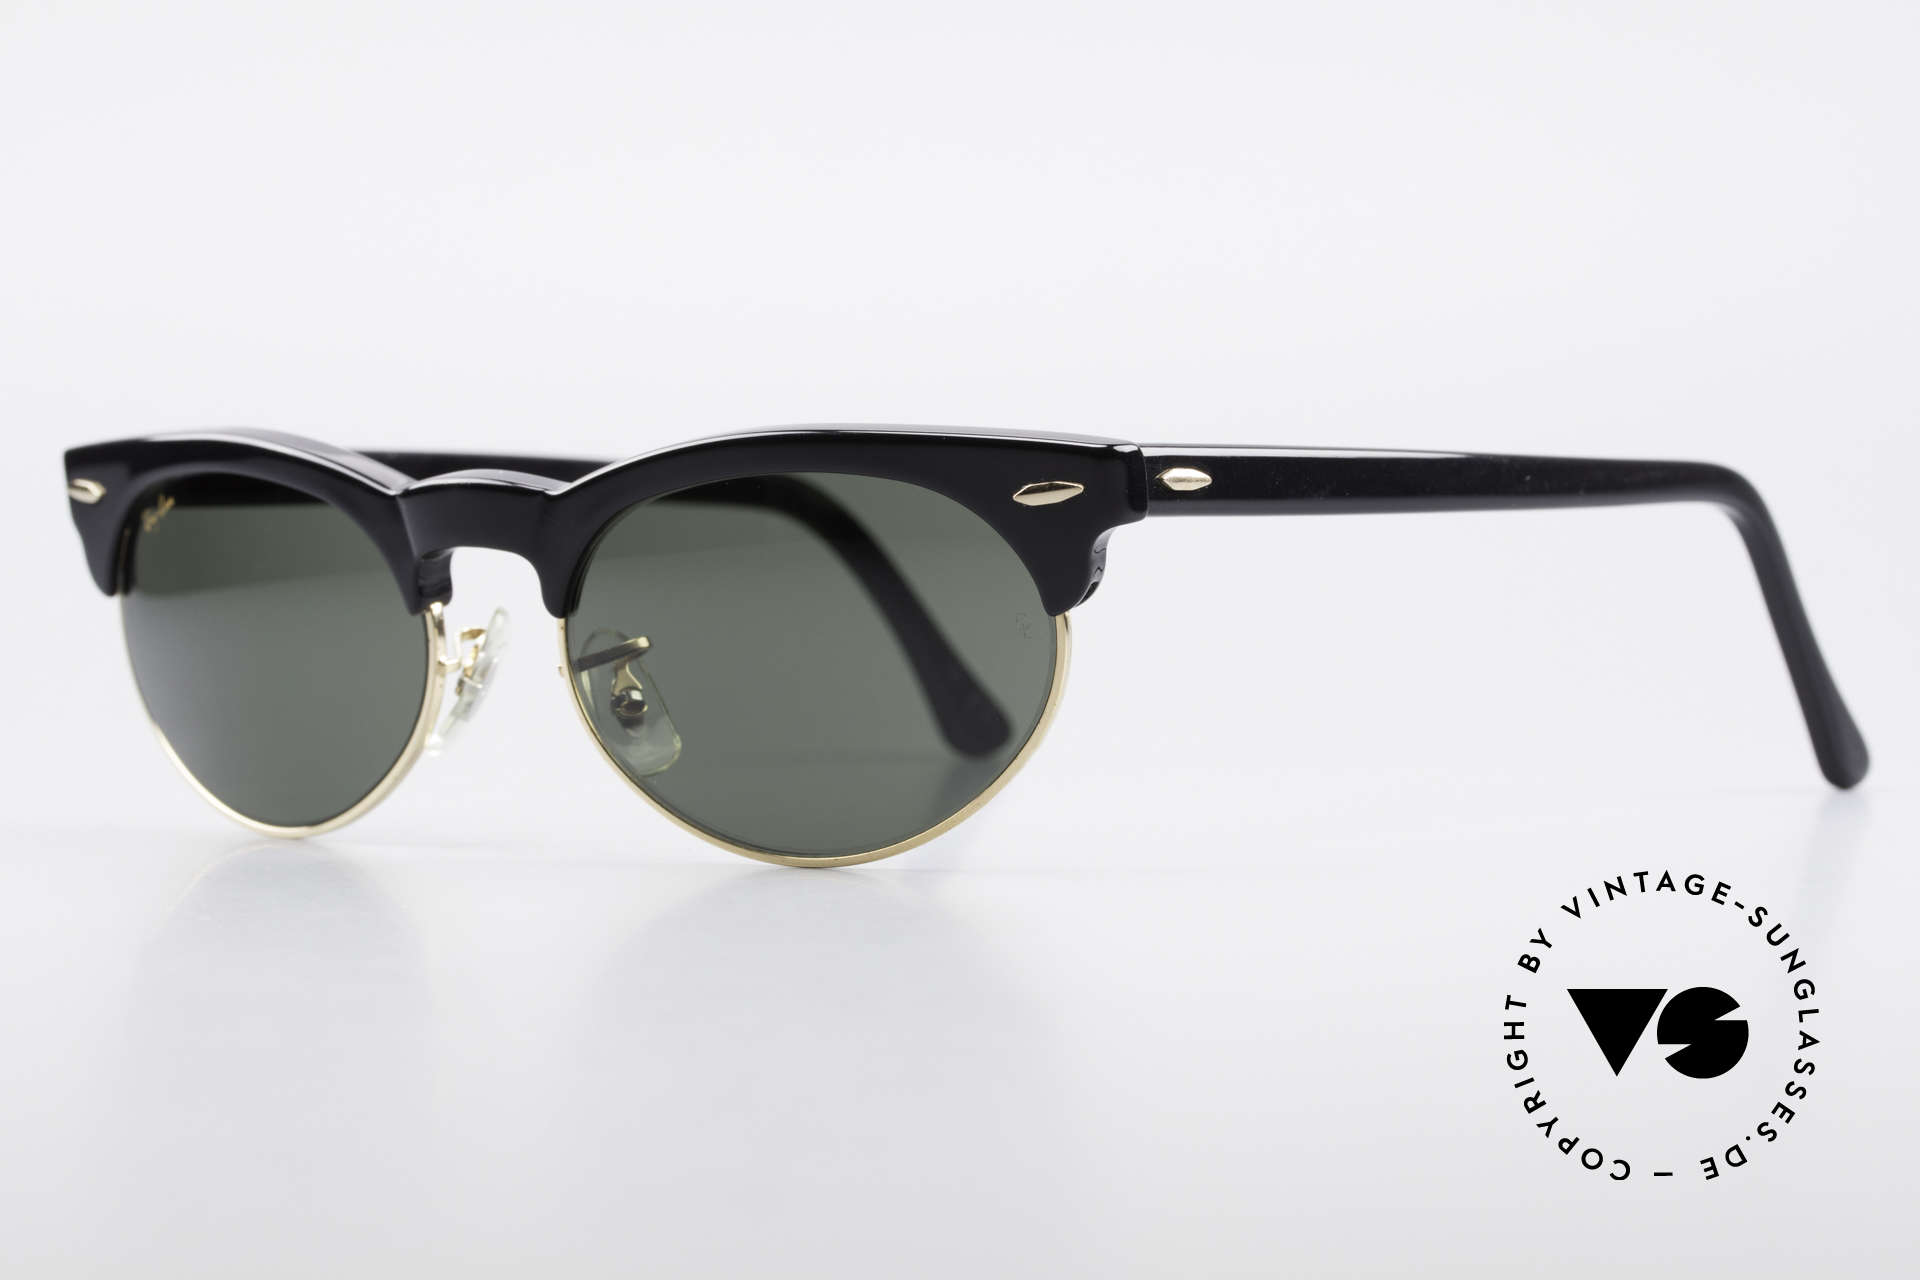 Ray Ban Oval Max 80's Bausch & Lomb Shades B&L, Bausch&Lomb G15 quality lenses; 100% UV prot., Made for Men and Women